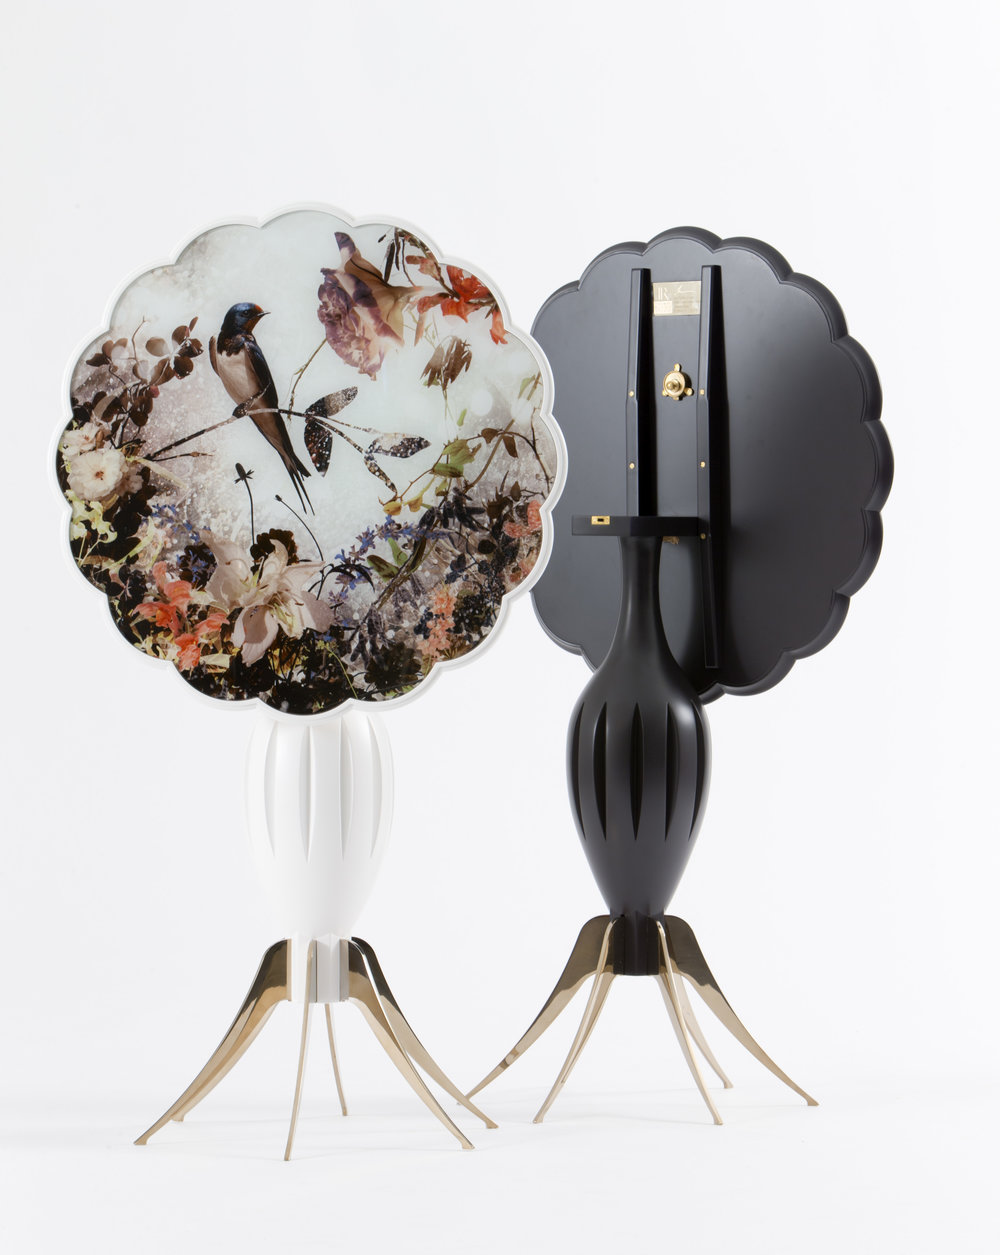 La Petite Blanche et Noire , 2014, Painted Wood, Gold Mirror Polished Stainless Steel, Low-Iron Glass, Artist Image Painted in Ceramic Frit, 30 × 24 in